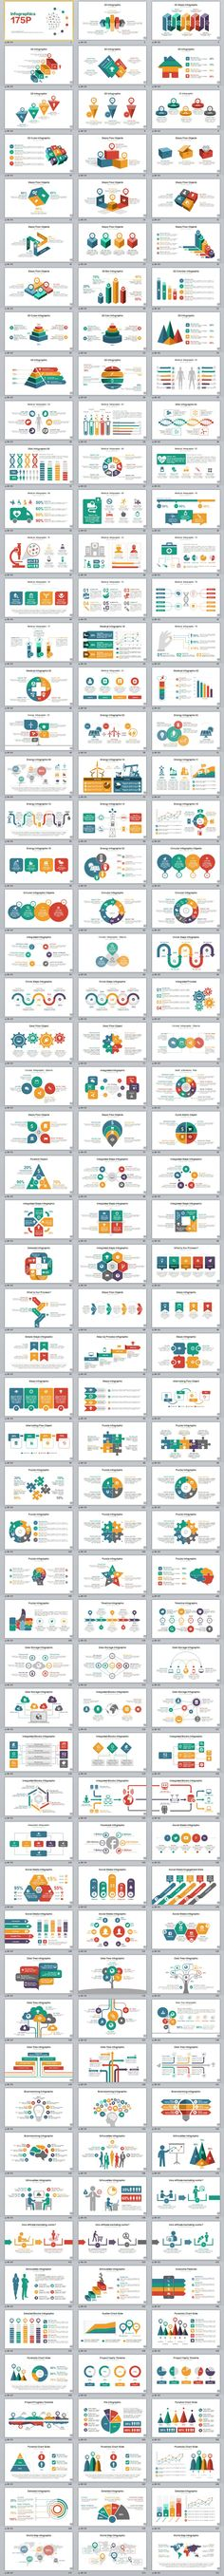 174+ Best infographics multi-industry PowerPoint template #powerpoint #templates #presentation #animation #backgrounds #pptwork.com #annual #report #business #company #design #creative #slide #infographic #chart #themes #ppt #pptx #slideshow